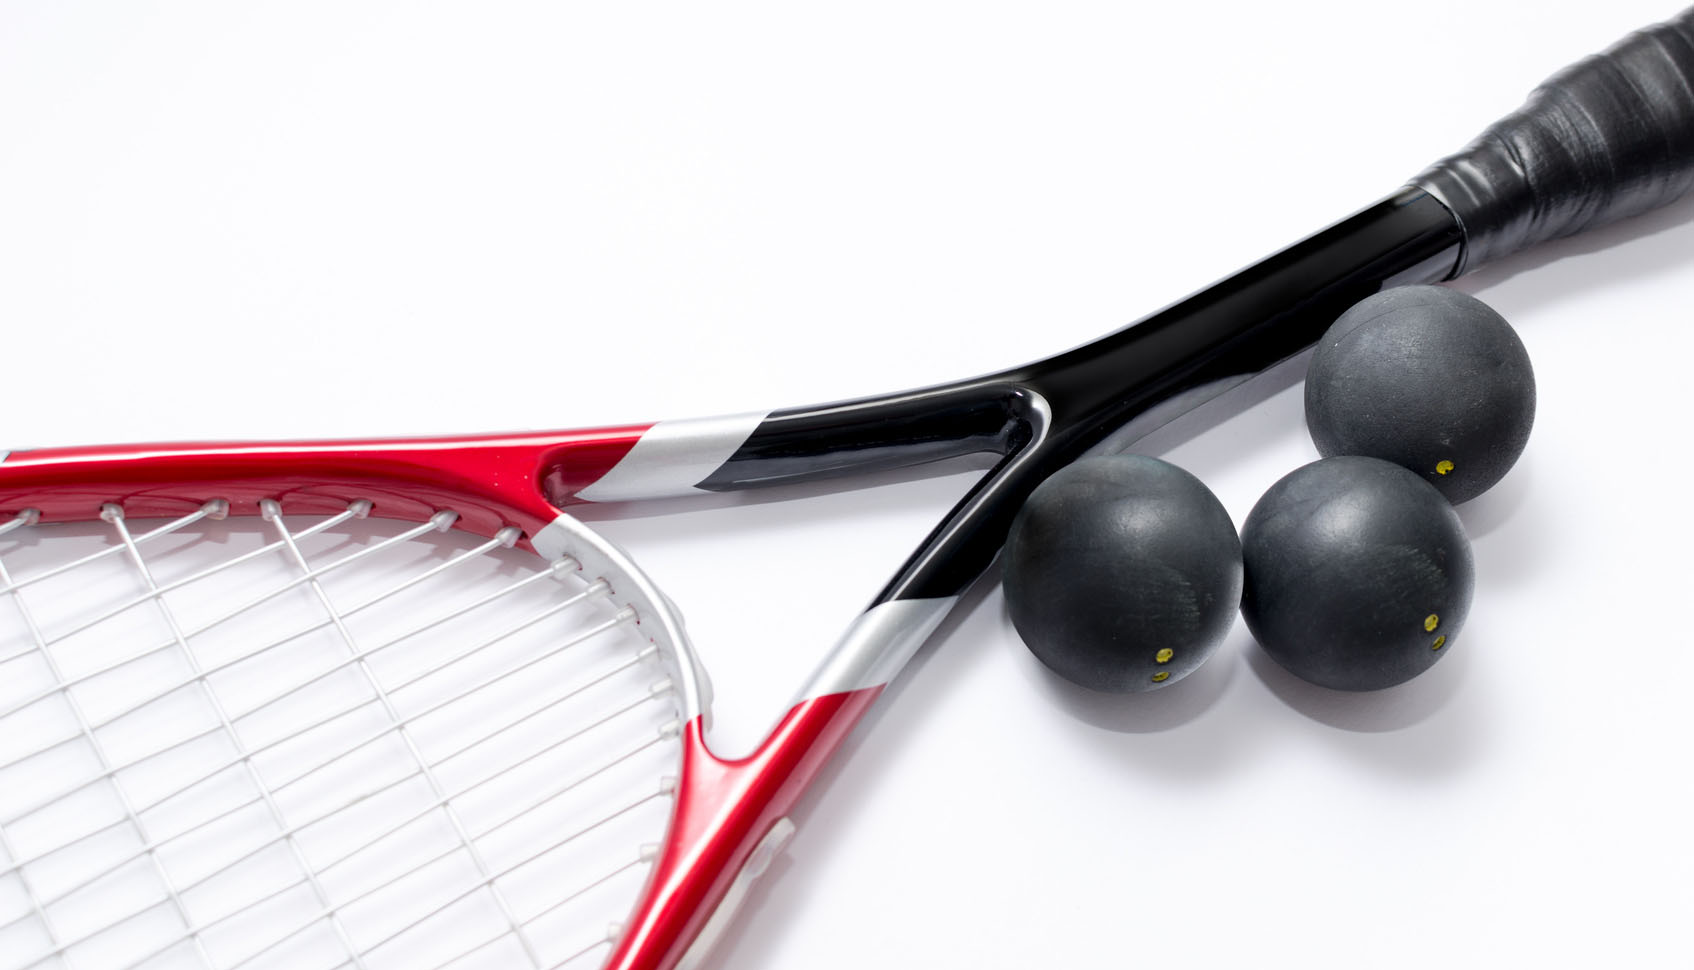 Do Squash Players Have to Sell Their Kidney to Make a Living?